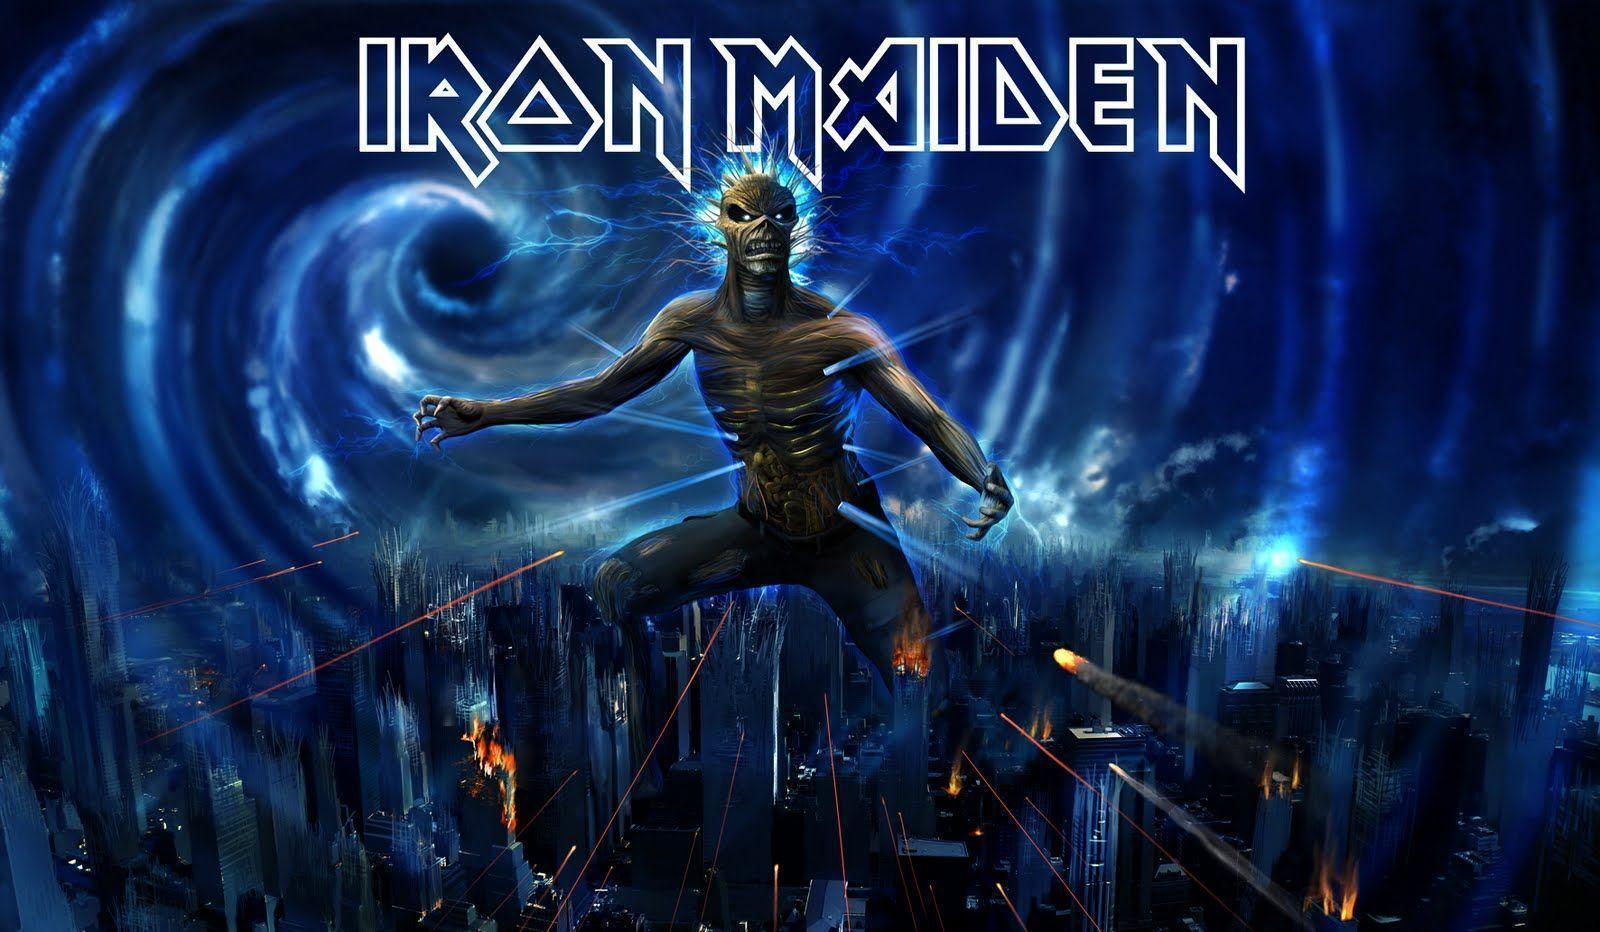 Iron Maiden Wallpapers - Wallpaper Cave